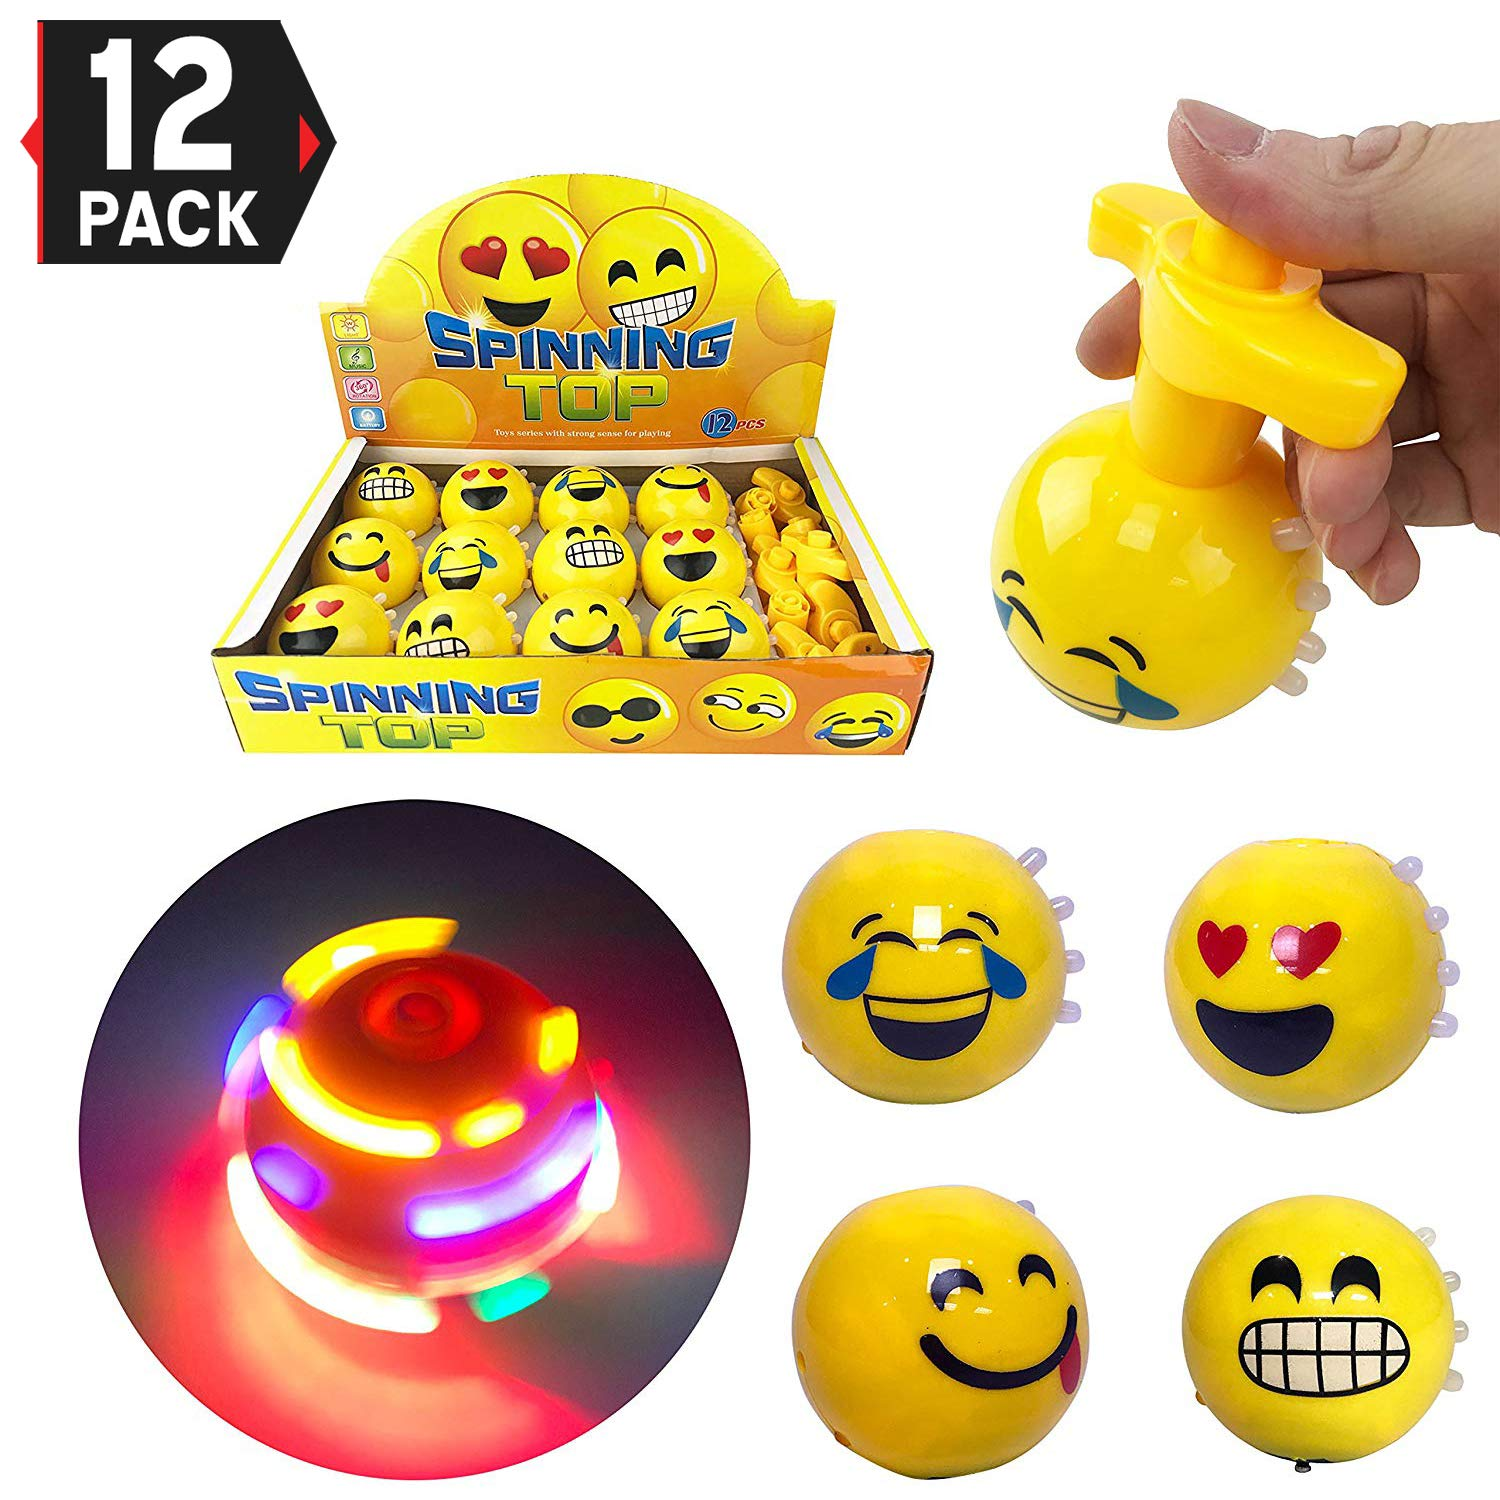 Set of 12 Large 3-inch LED Light Up Flashing Emoji Spinning Tops with Gyroscope and Music, Novelty Bulk Toys Party Favors by Liberty Imports